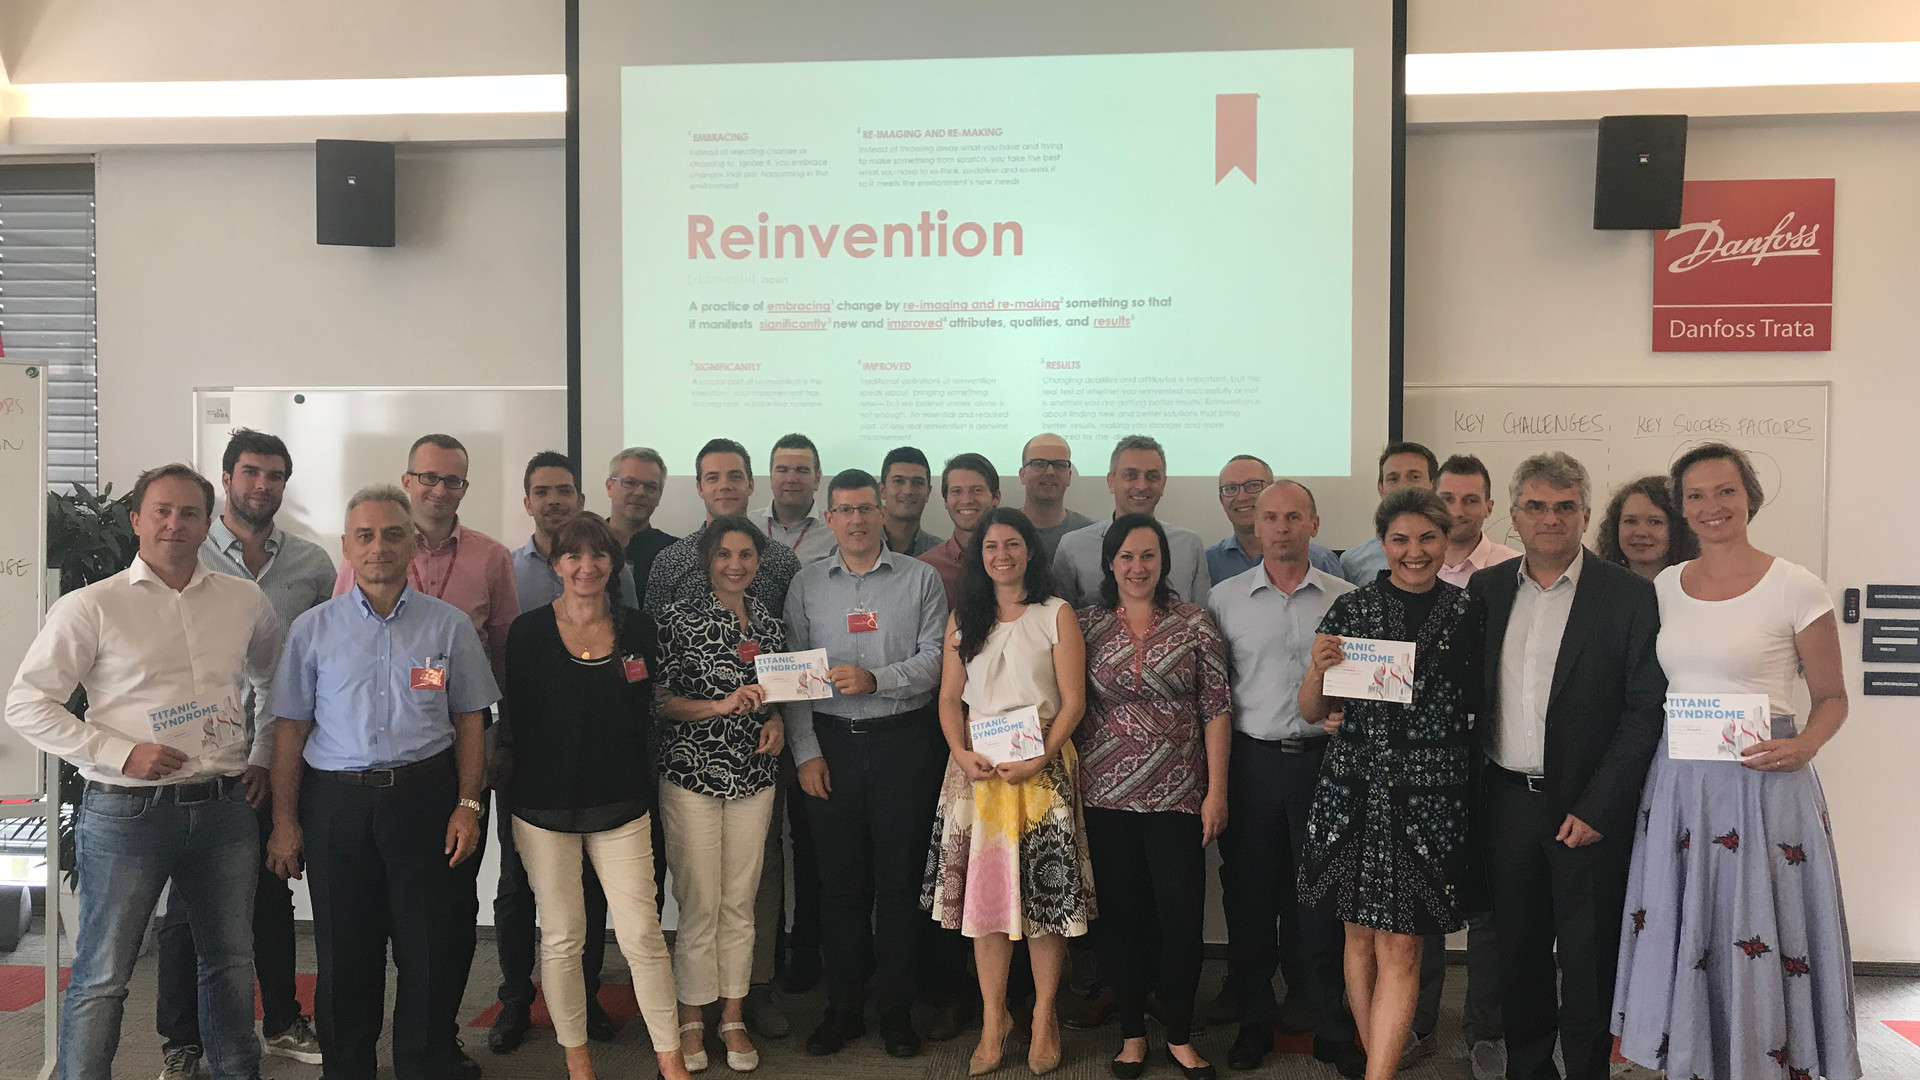 Reinvention Society event in Slovenia